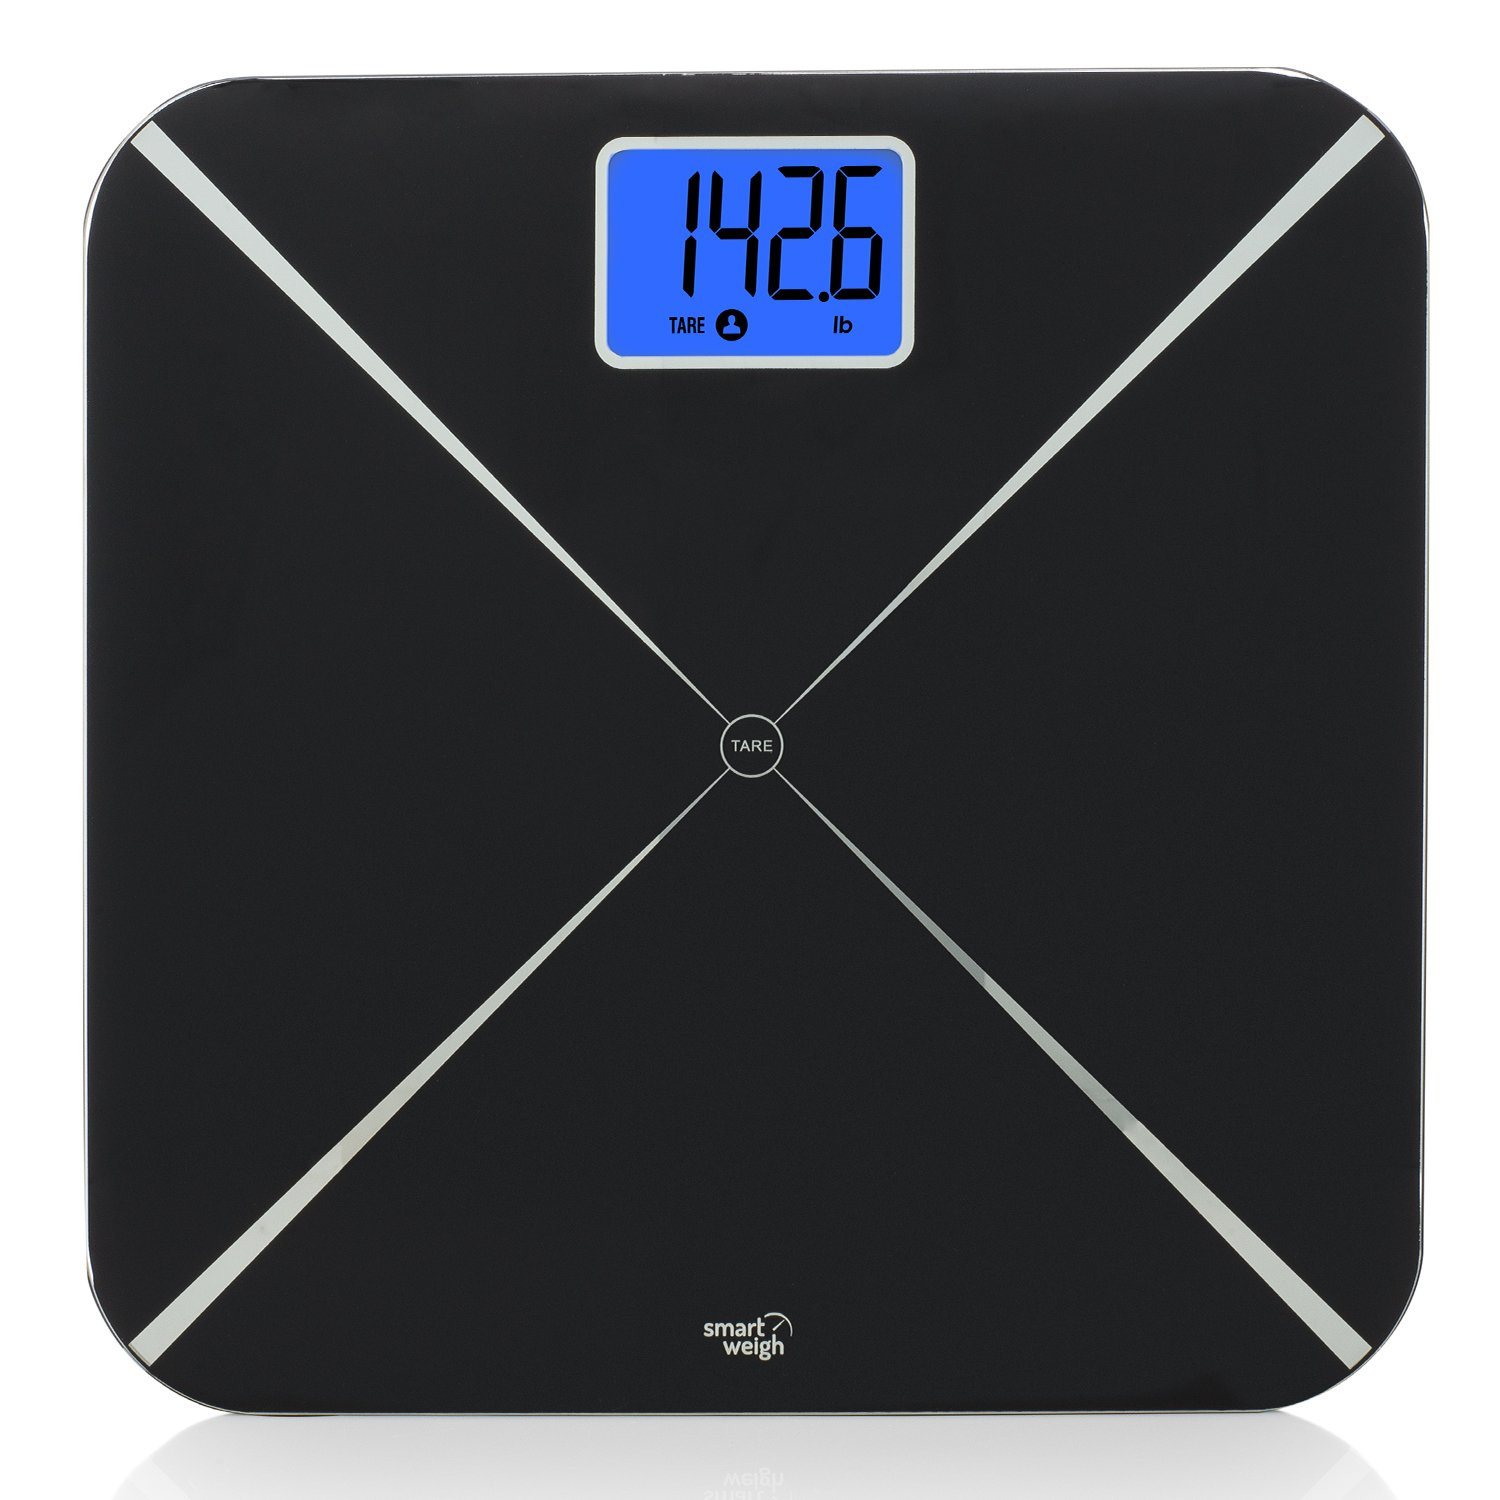 Smart Weigh Digital Body Weight Scale with Baby or Pet Tare Weighing Technology, Bathroom Scale with Large LCD Display and Tempered Glass Platform, 440lbs/200kg Capacity (Black)